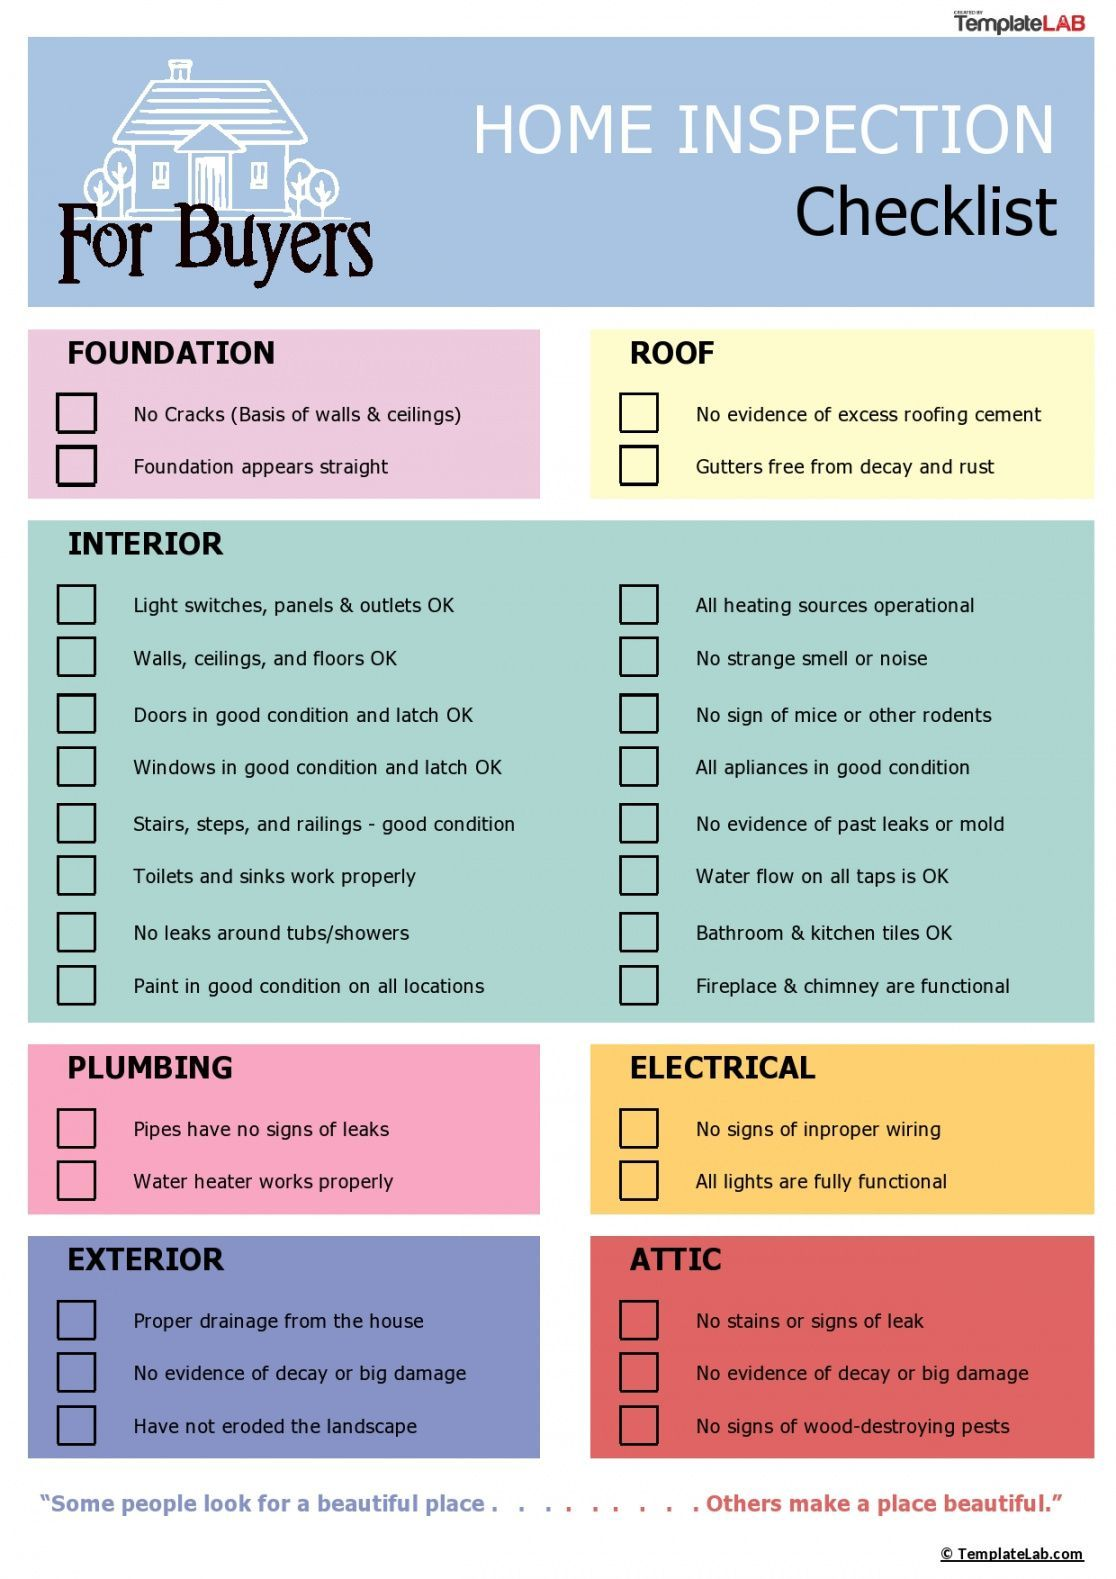 Browse Our Sample Of Buying A House Checklist Template For Free Inspection Checklist Home Inspection House Checklist